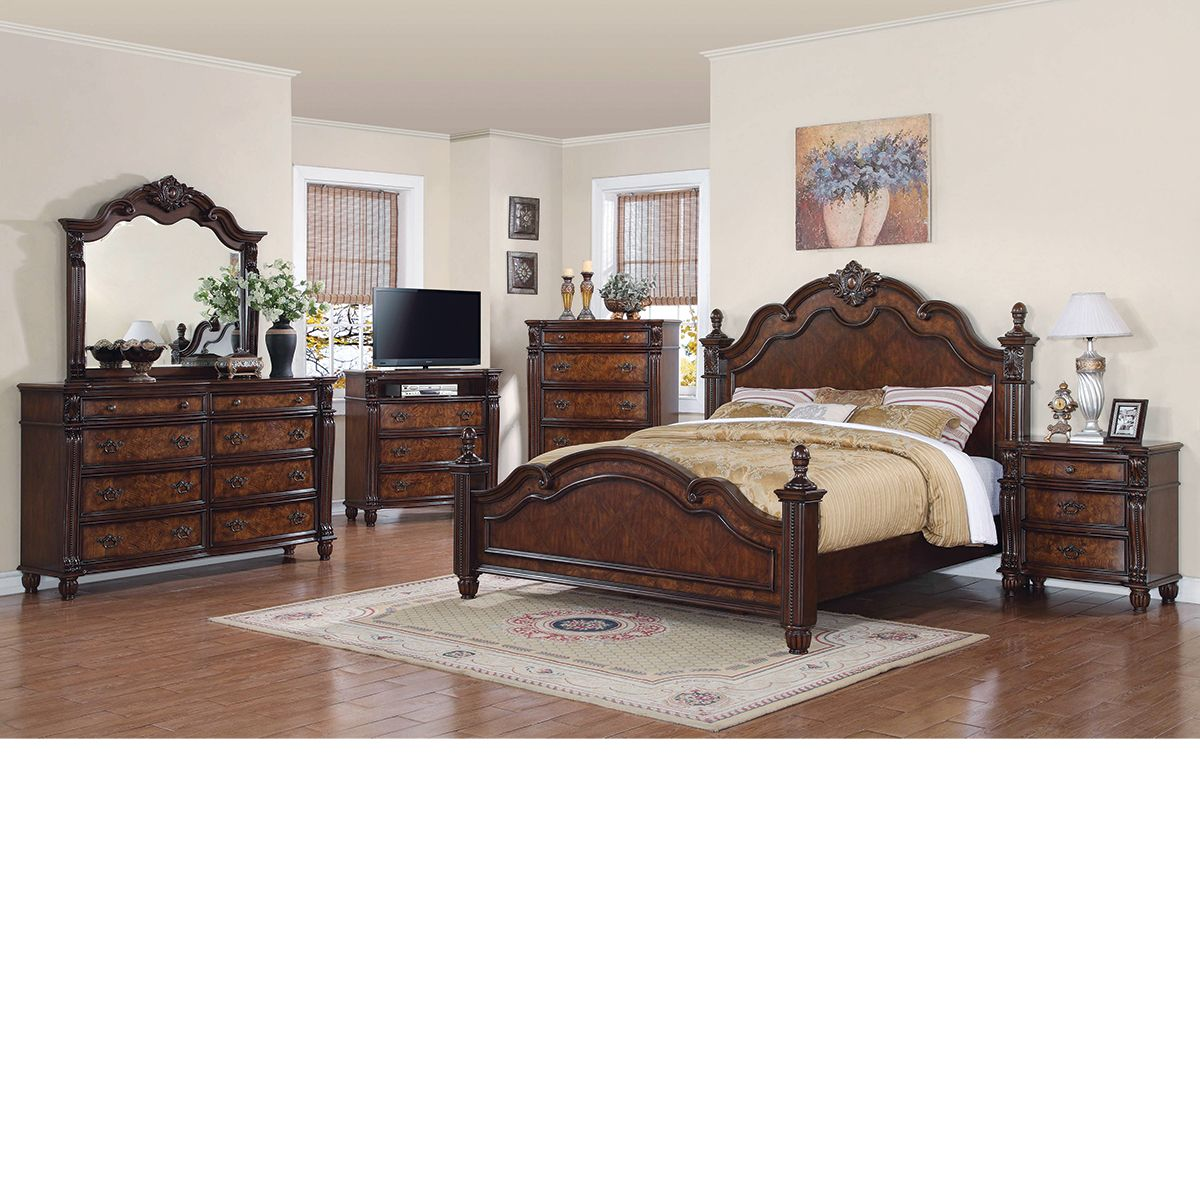 The Dump Furniture Outlet Is The Perfect Place To Find Everything You Need To Create The Bedroom Of Your Dreams